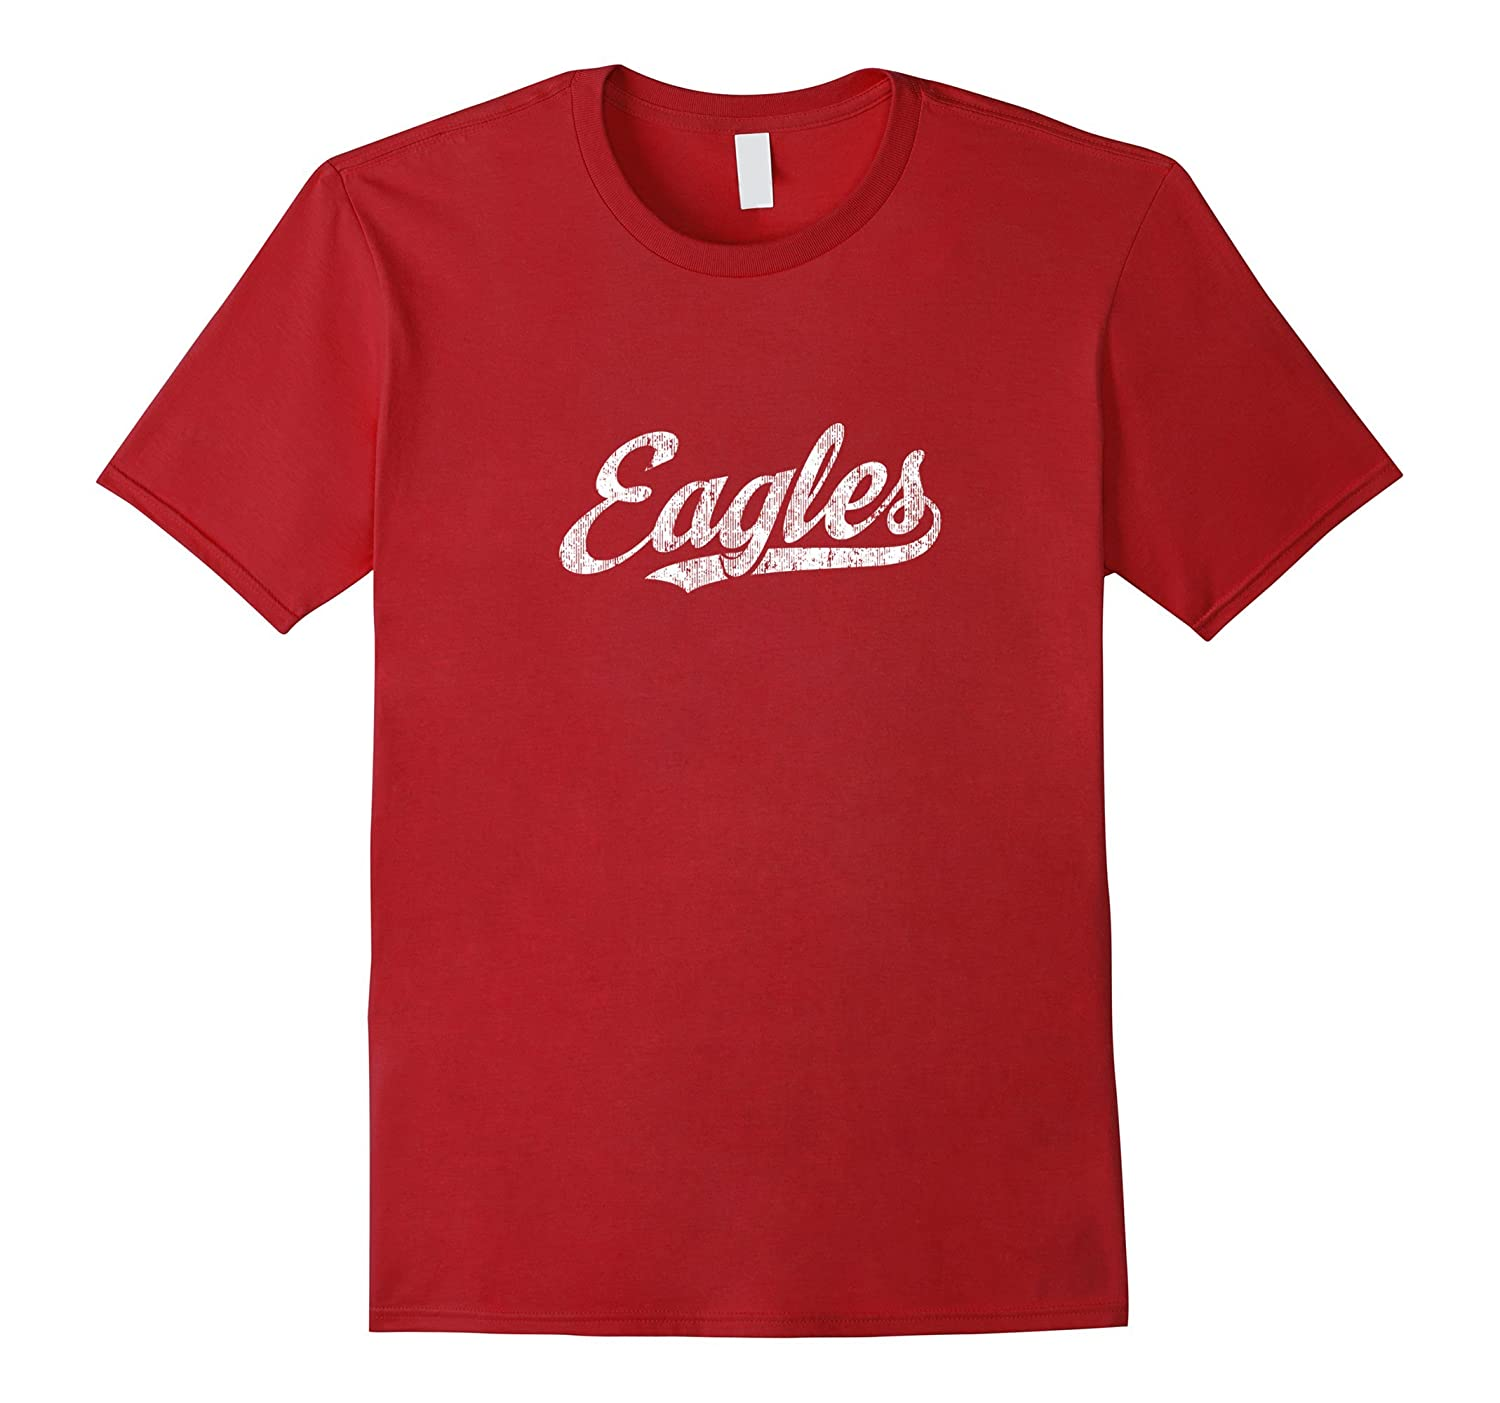 Eagles Mascot T Shirt Vintage Sports Name Tee Design-ah my shirt one gift